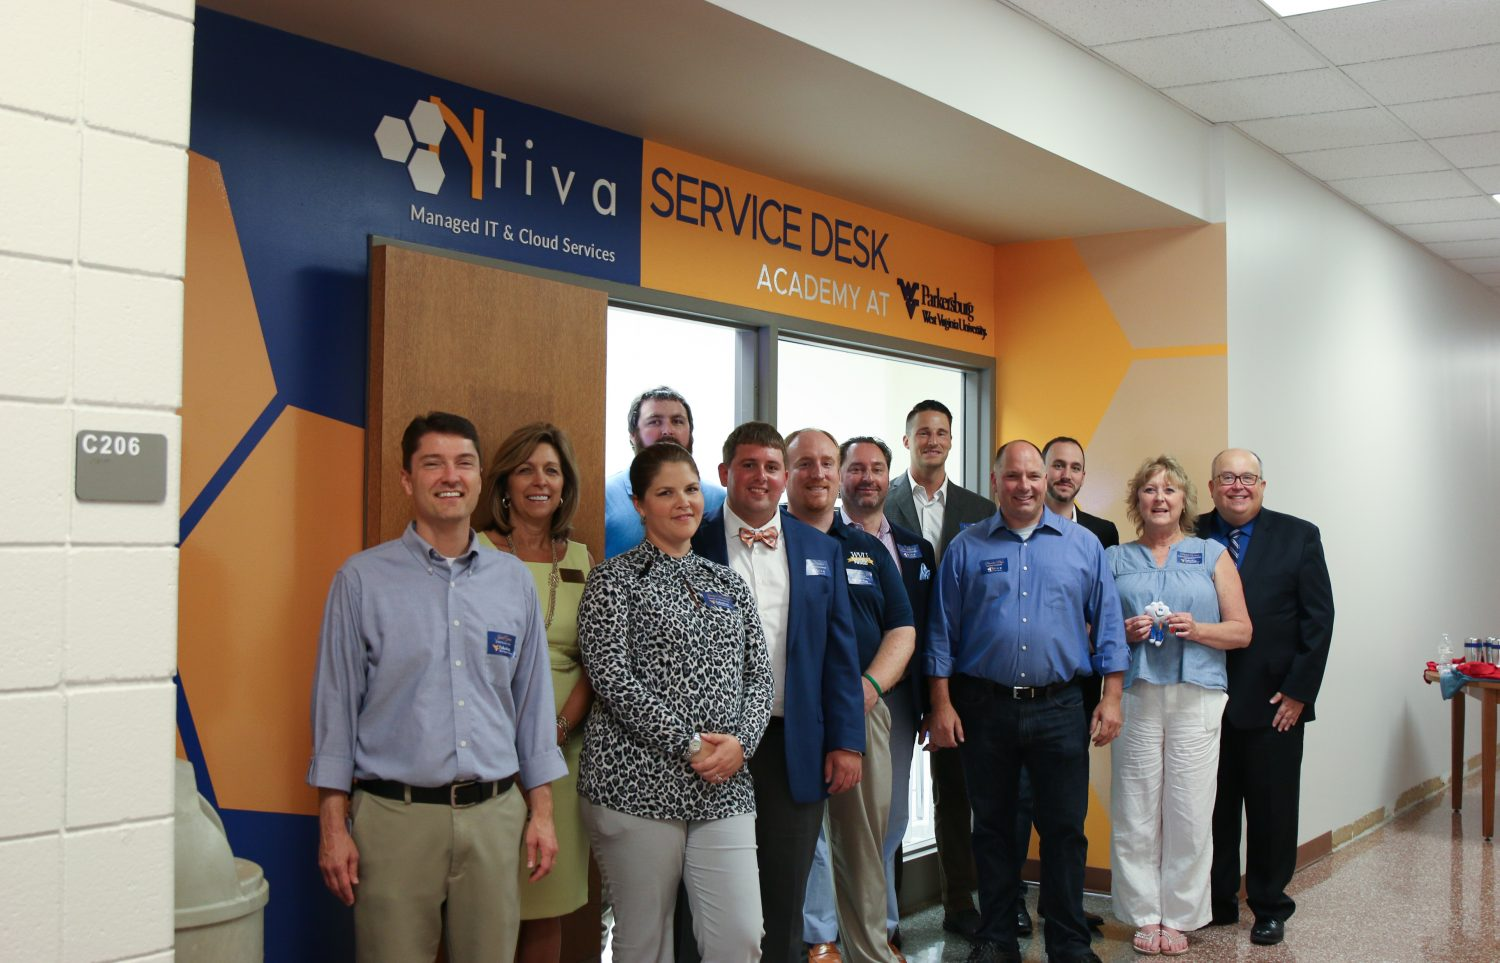 Ntiva Service Desk Academy to provide WVU Parkersburg CIT students with remote, paid internship opportunities on campus